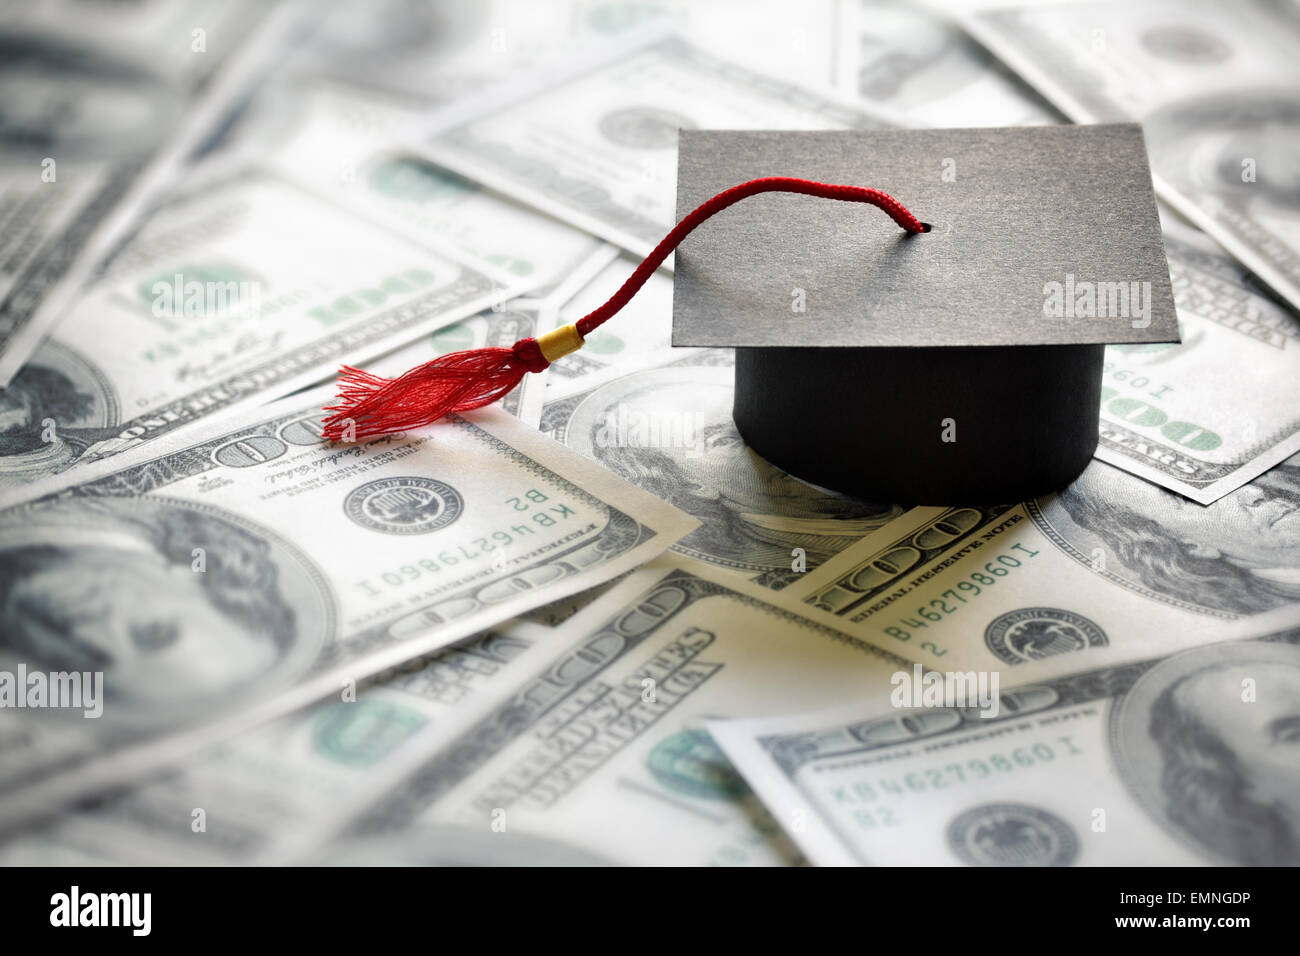 Graduation mortar board cap on one hundred dollar bills concept for the cost of a college and university education - Stock Image